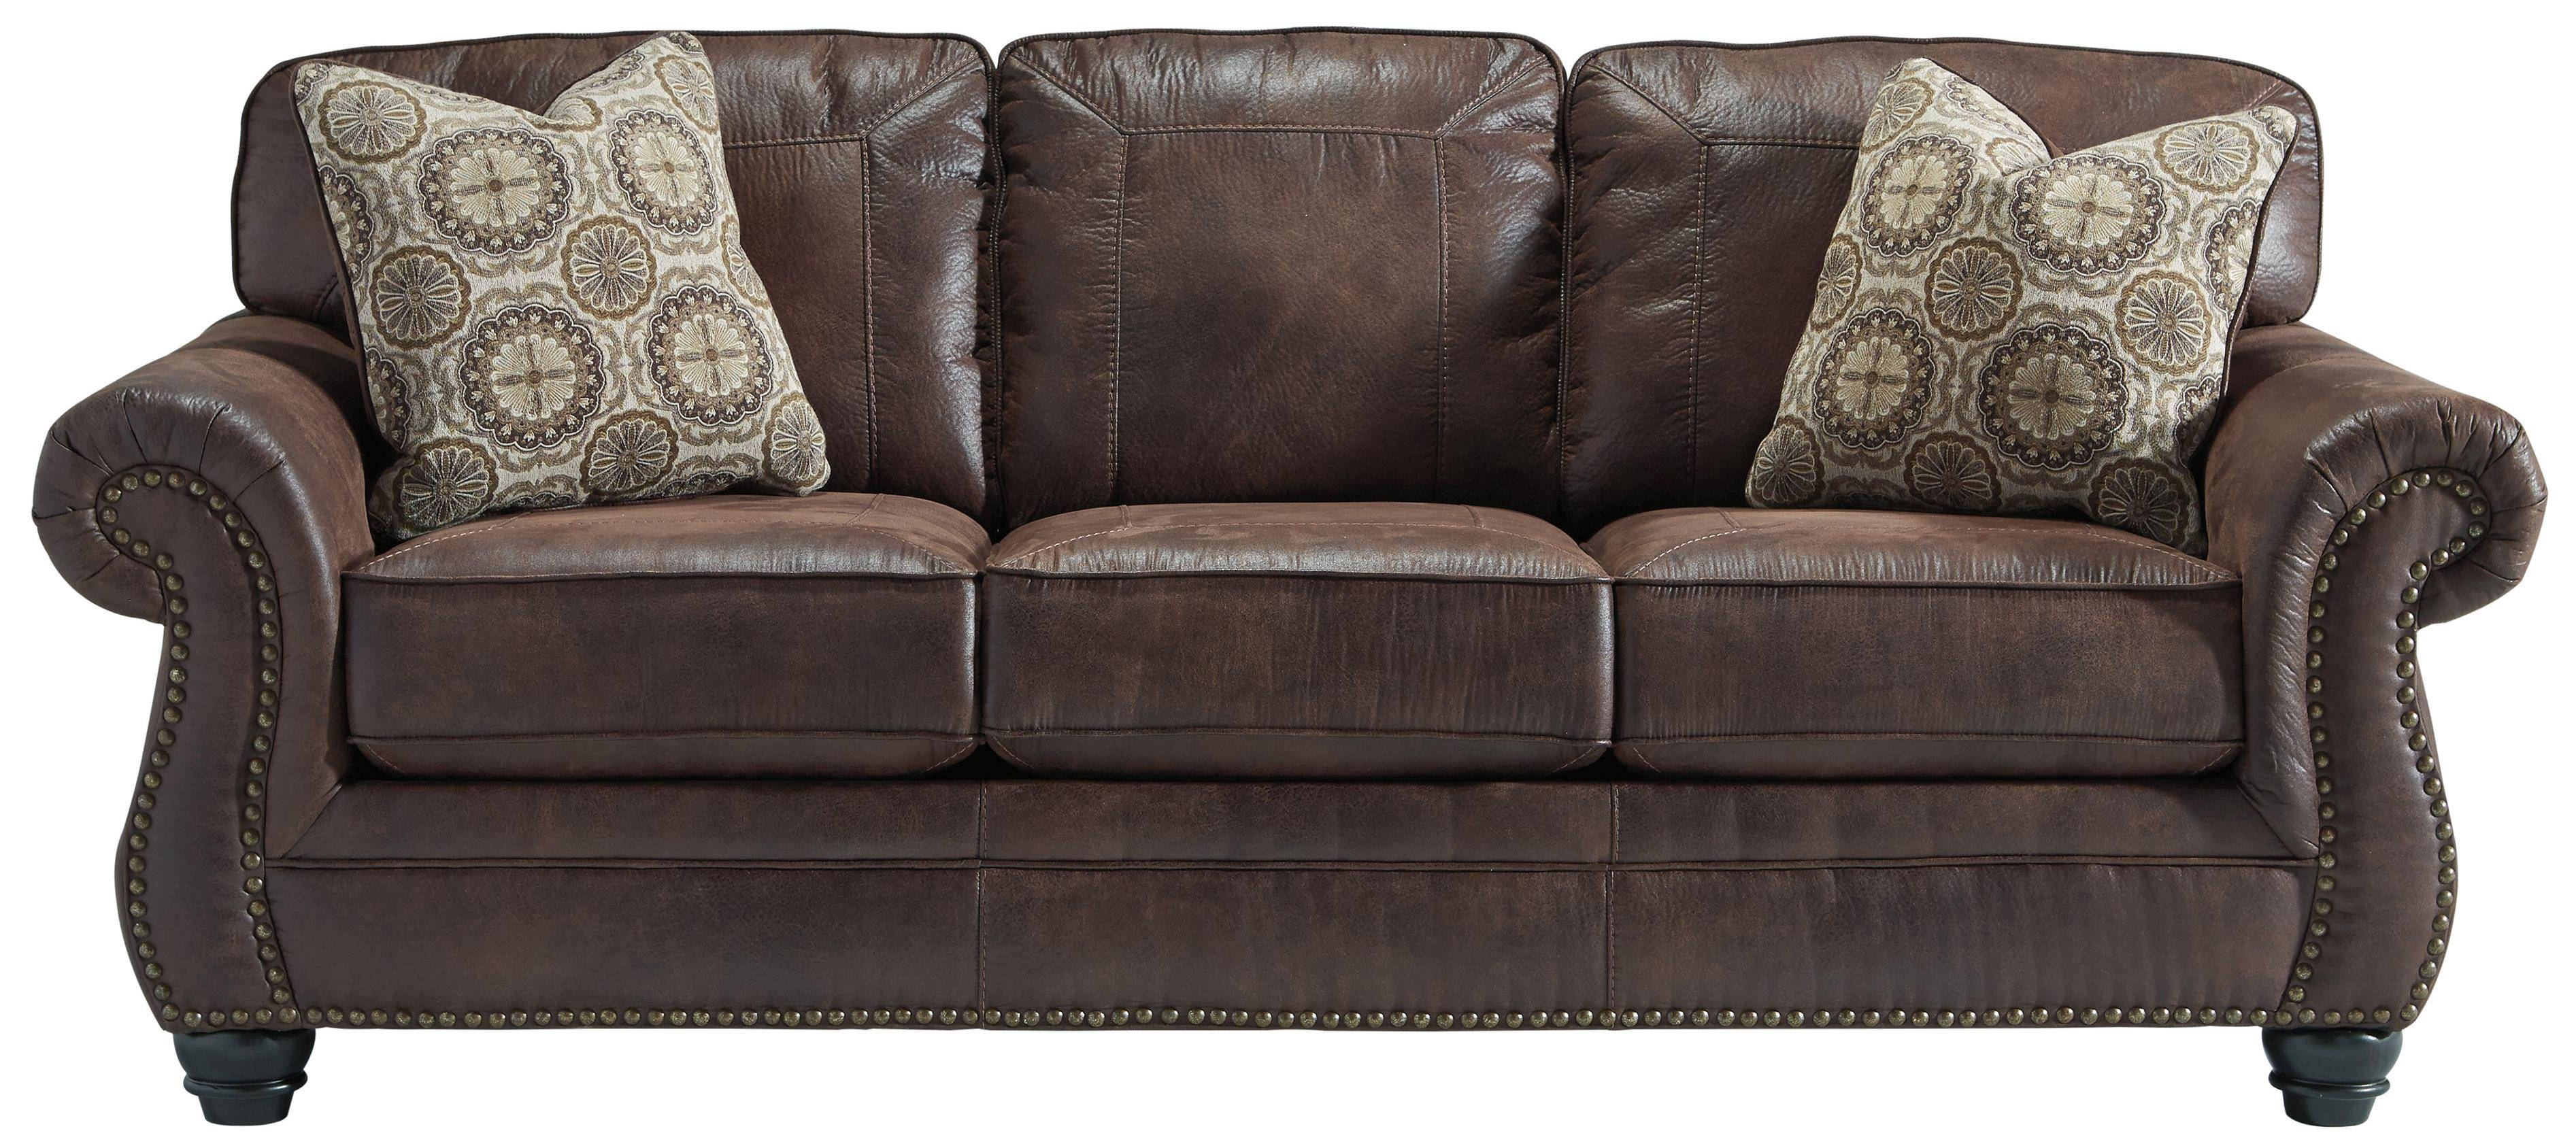 Attractive Leather Queen Sleeper Sofa Great Living Room Furniture throughout Faux Leather Sleeper Sofas (Image 2 of 15)